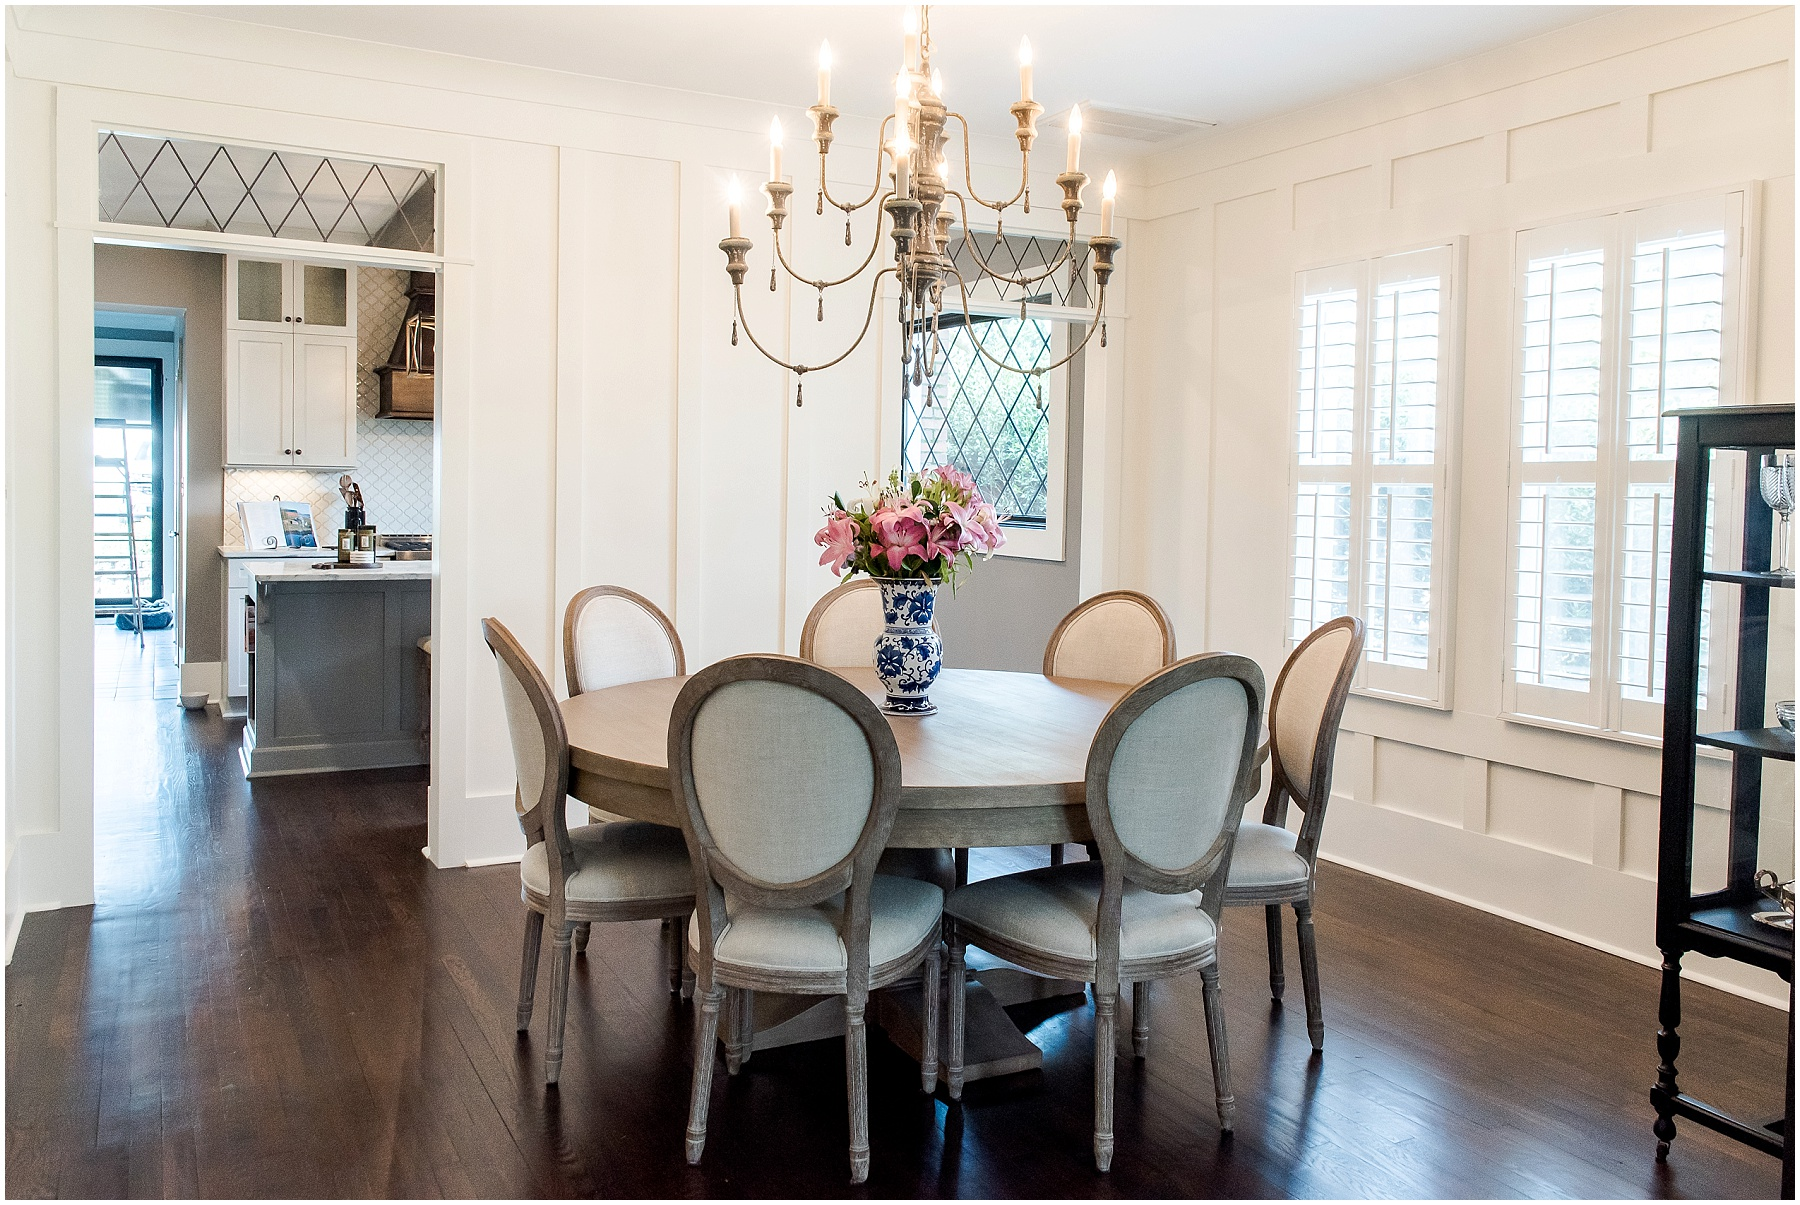 dining room designed by copper dwelling and design with custom judge's paneling installed